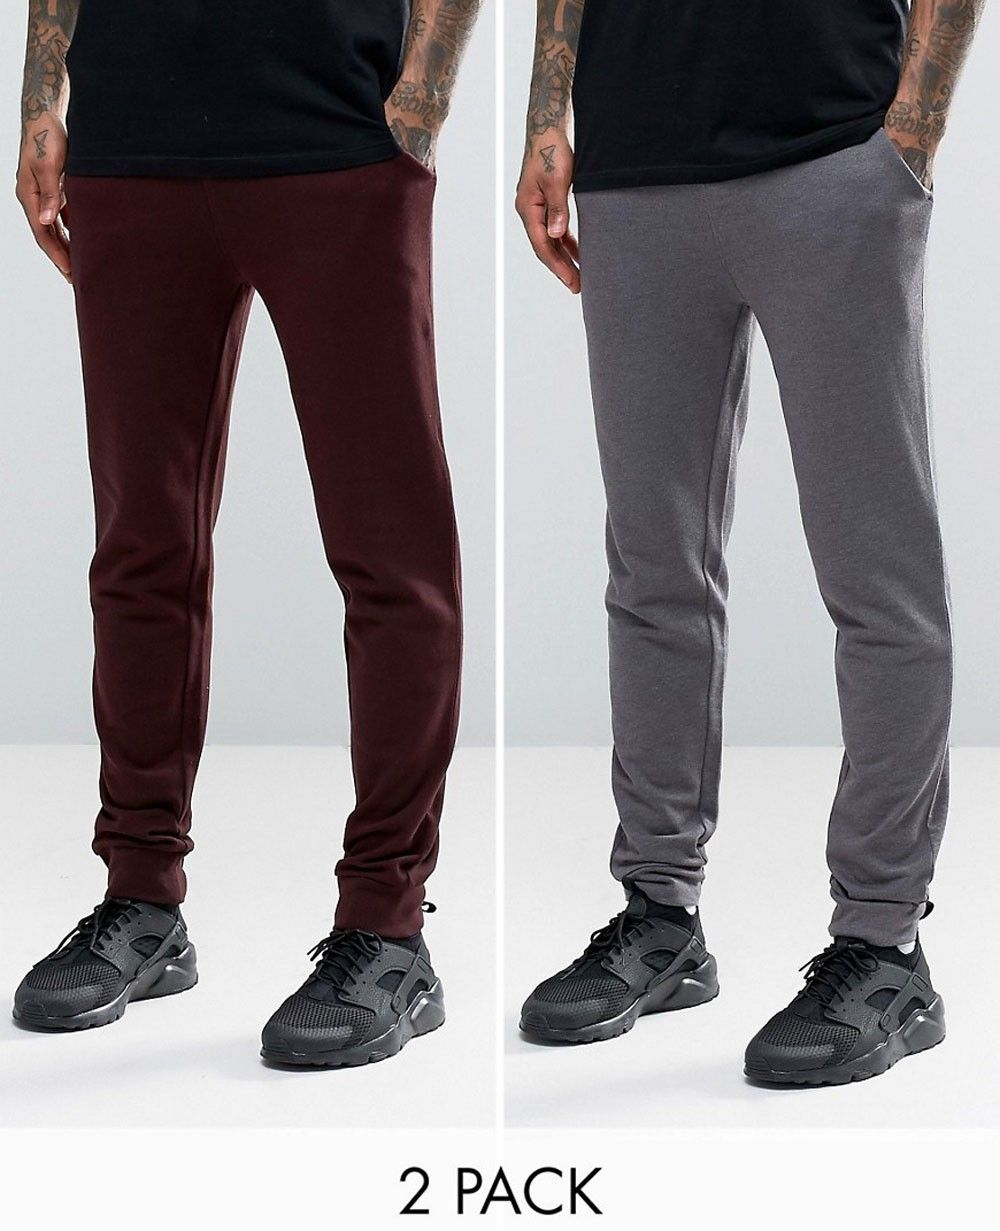 http://www.quickapparels.com/men-kinny-jersey-joggers-charcoal-and-burgundy.html